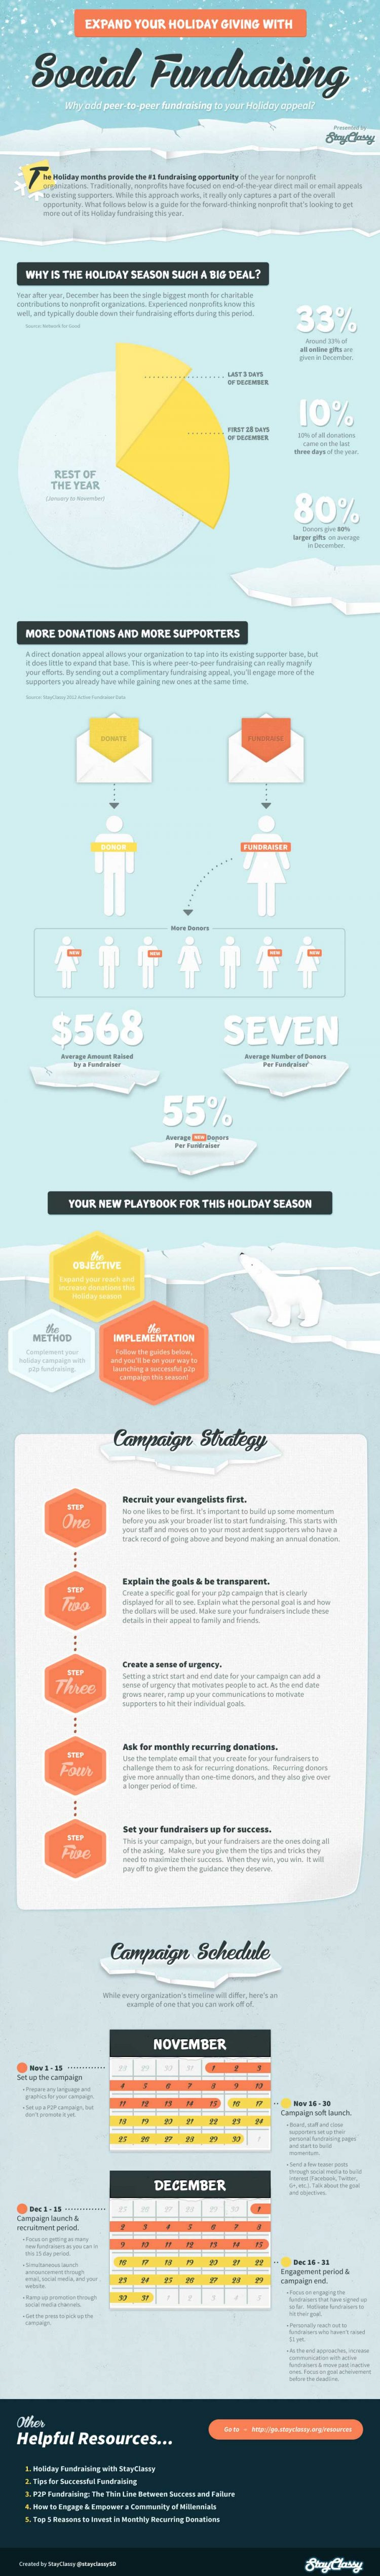 peer to peer holiday fundraising infographic